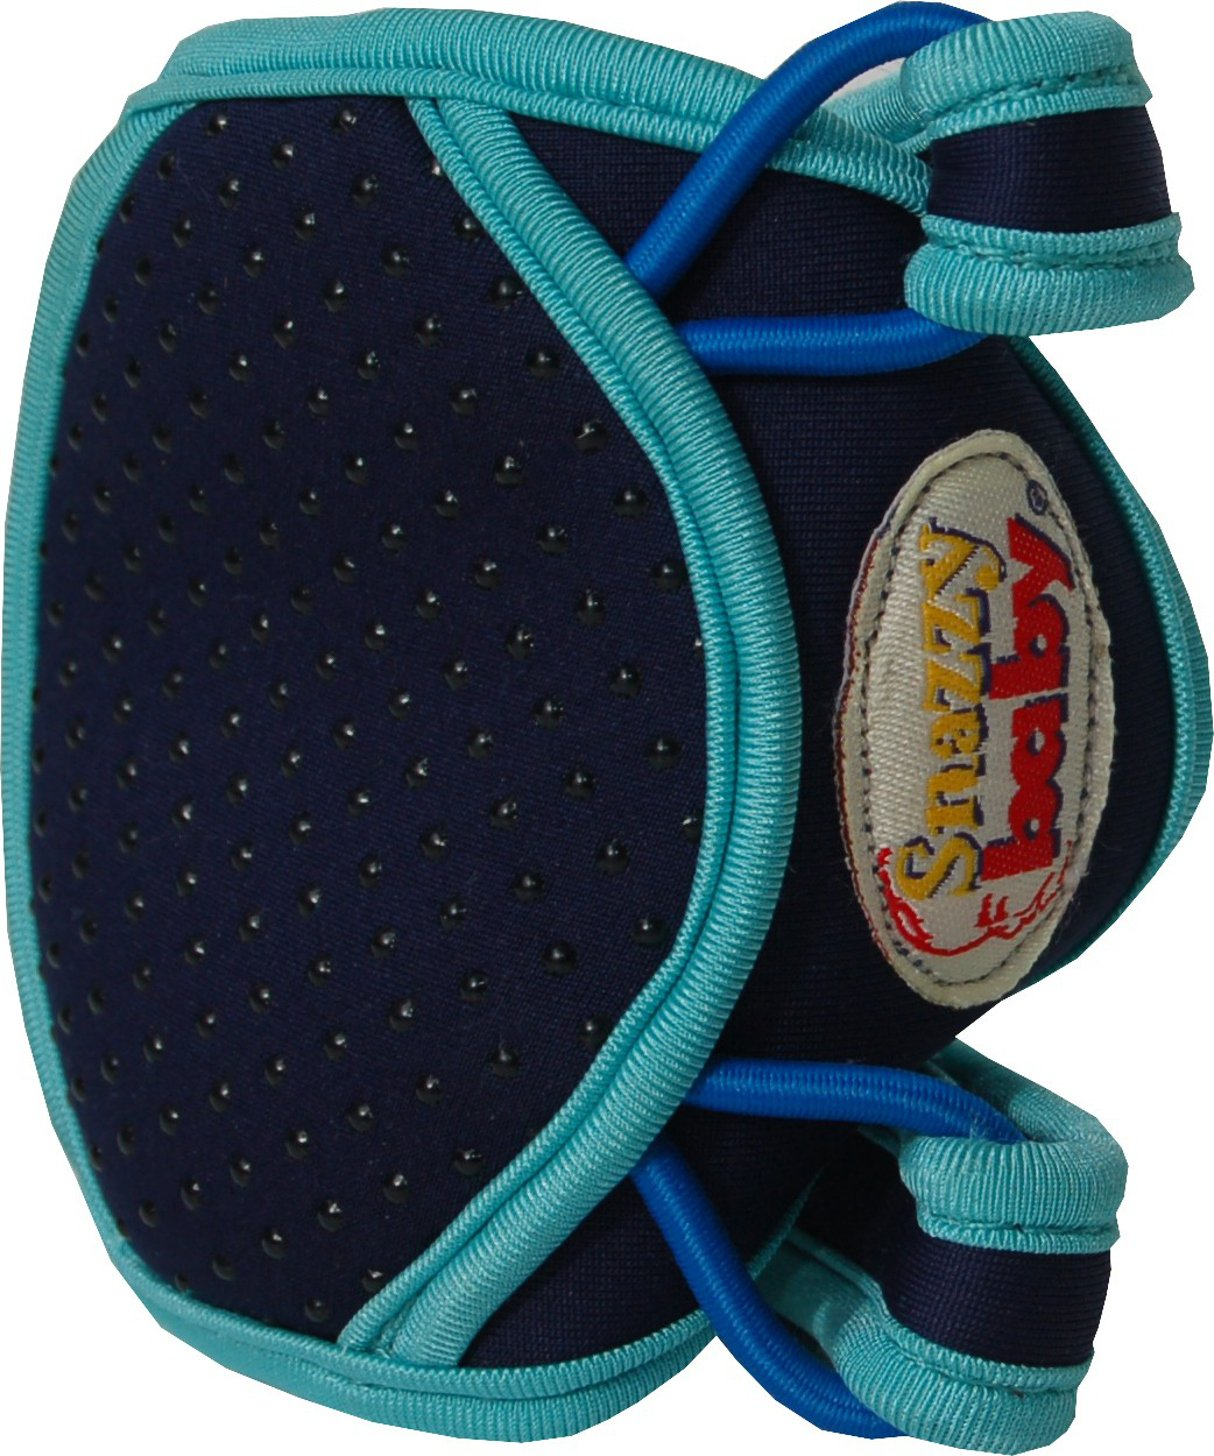 Top 9 Best Baby Knee Pads for Crawling Reviews in 2020 4